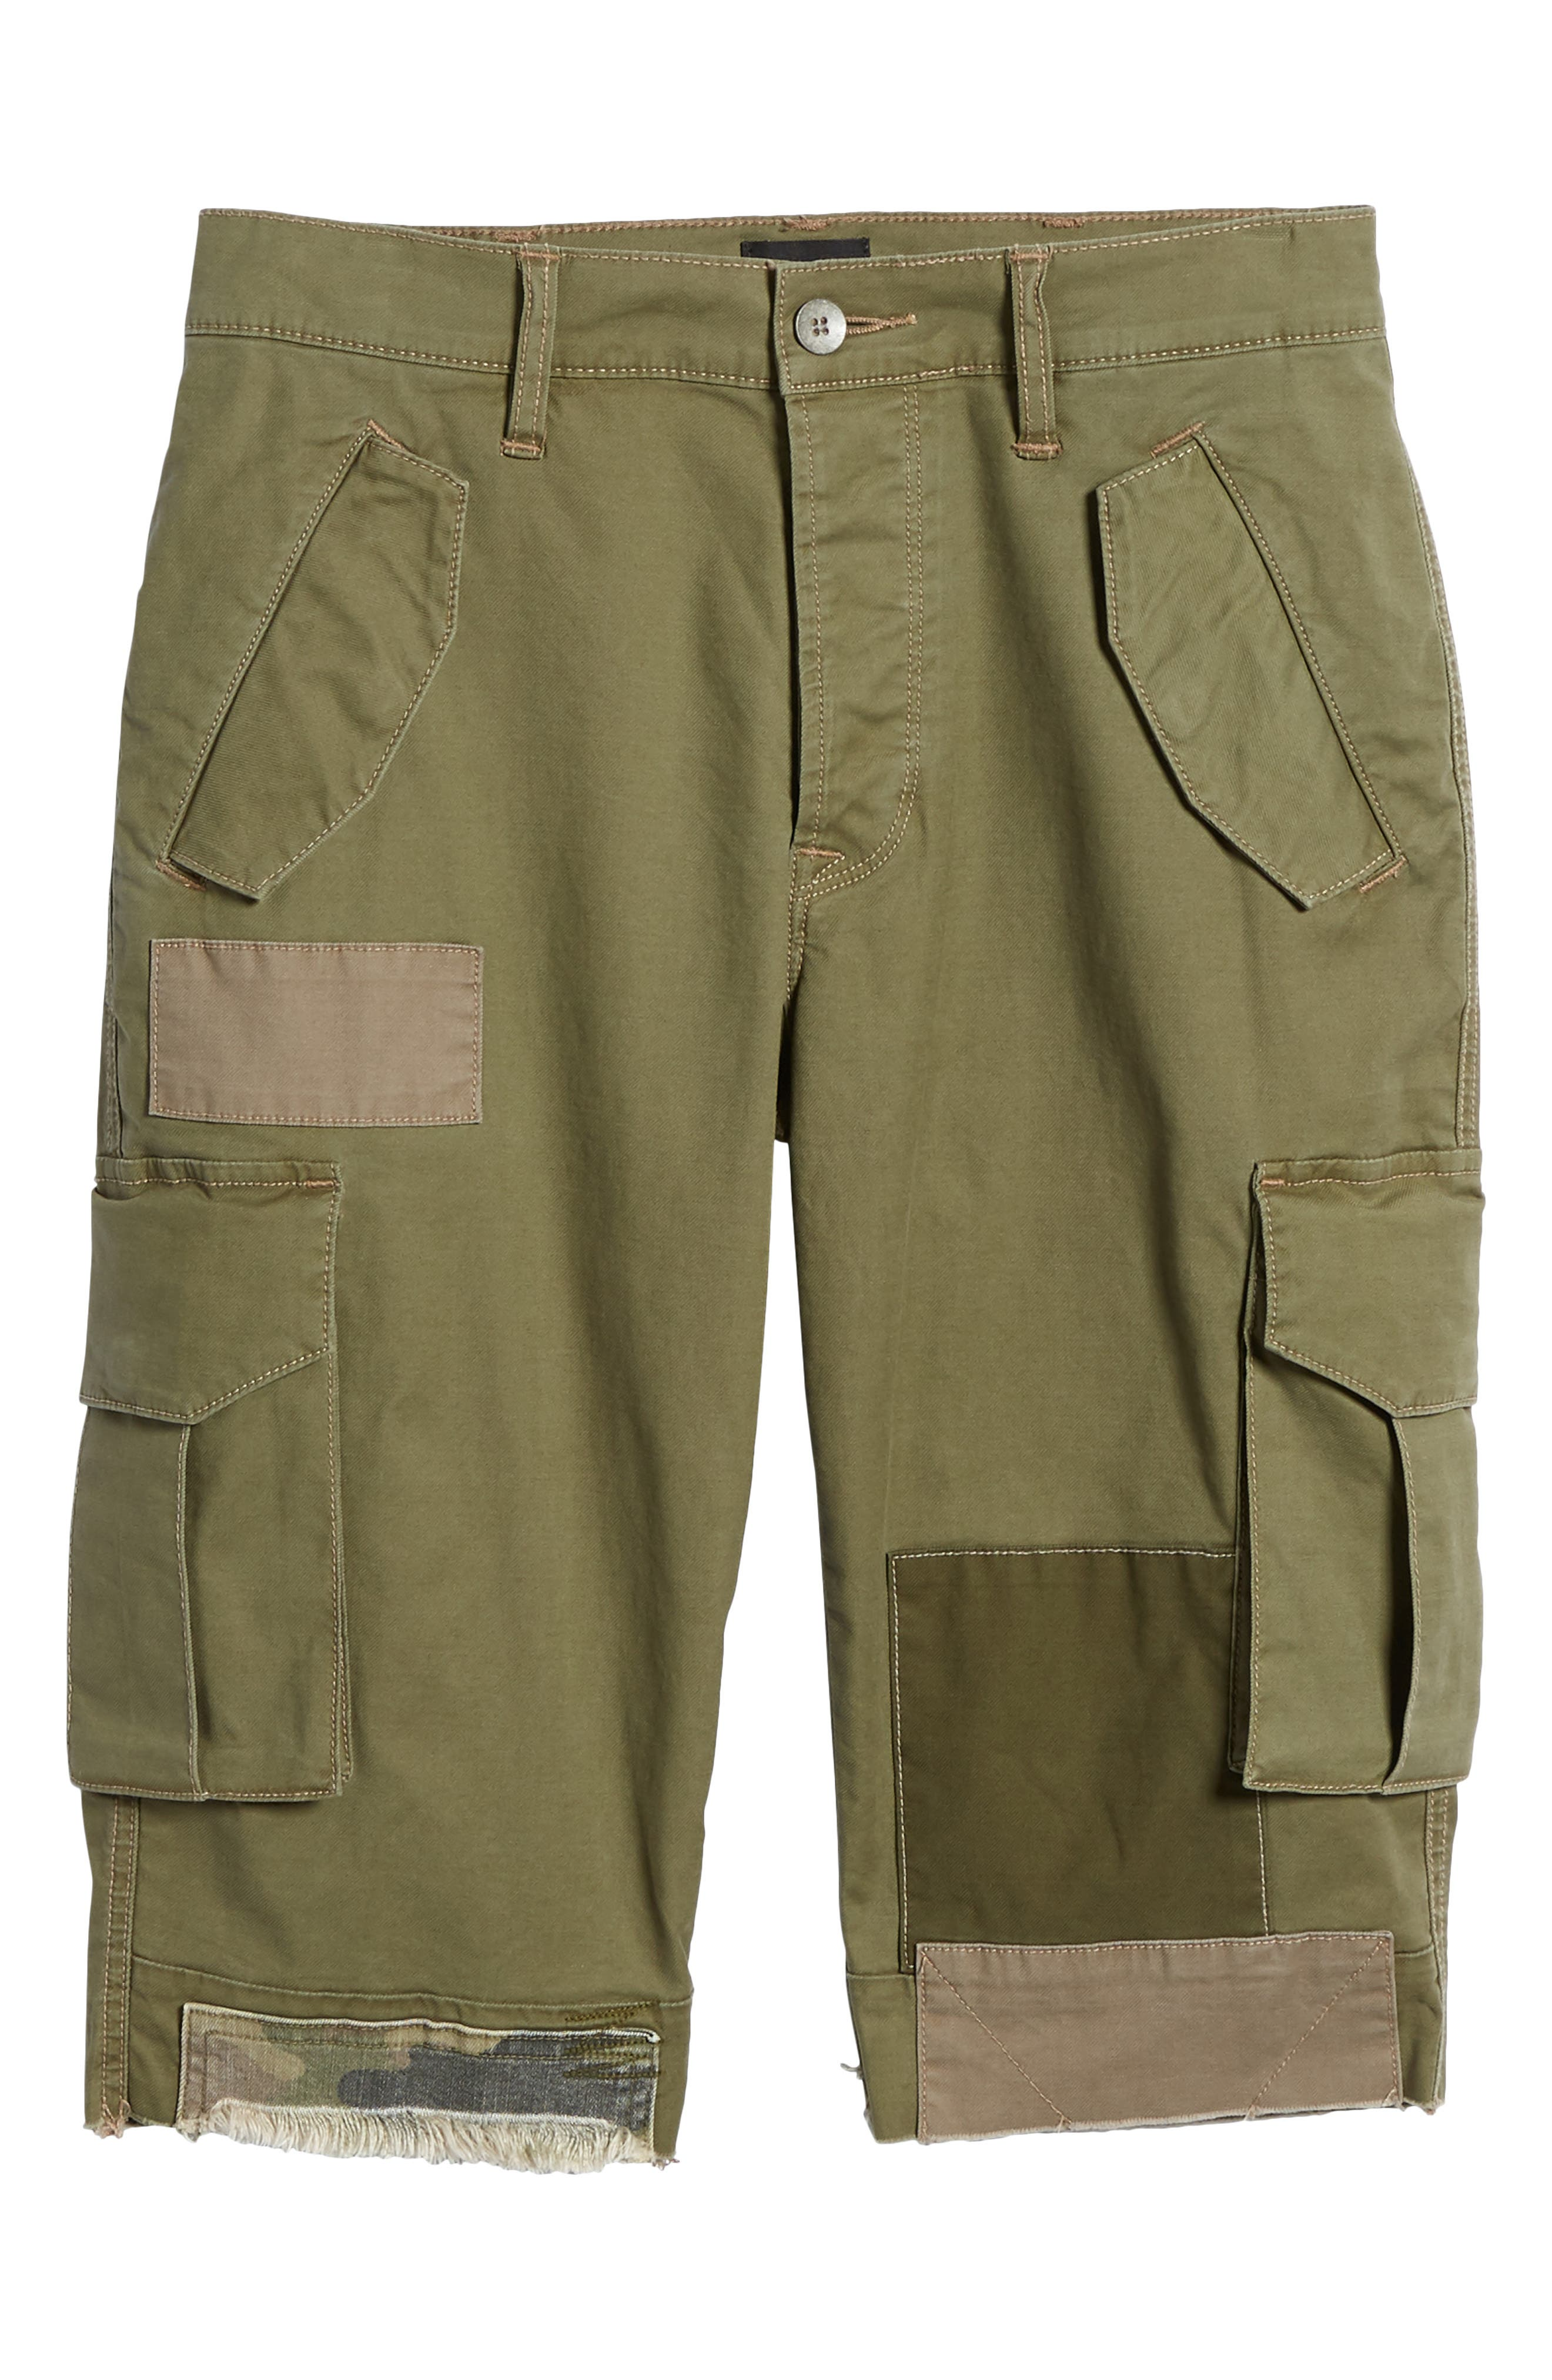 Slim Fit Cargo Shorts,                             Alternate thumbnail 6, color,                             359